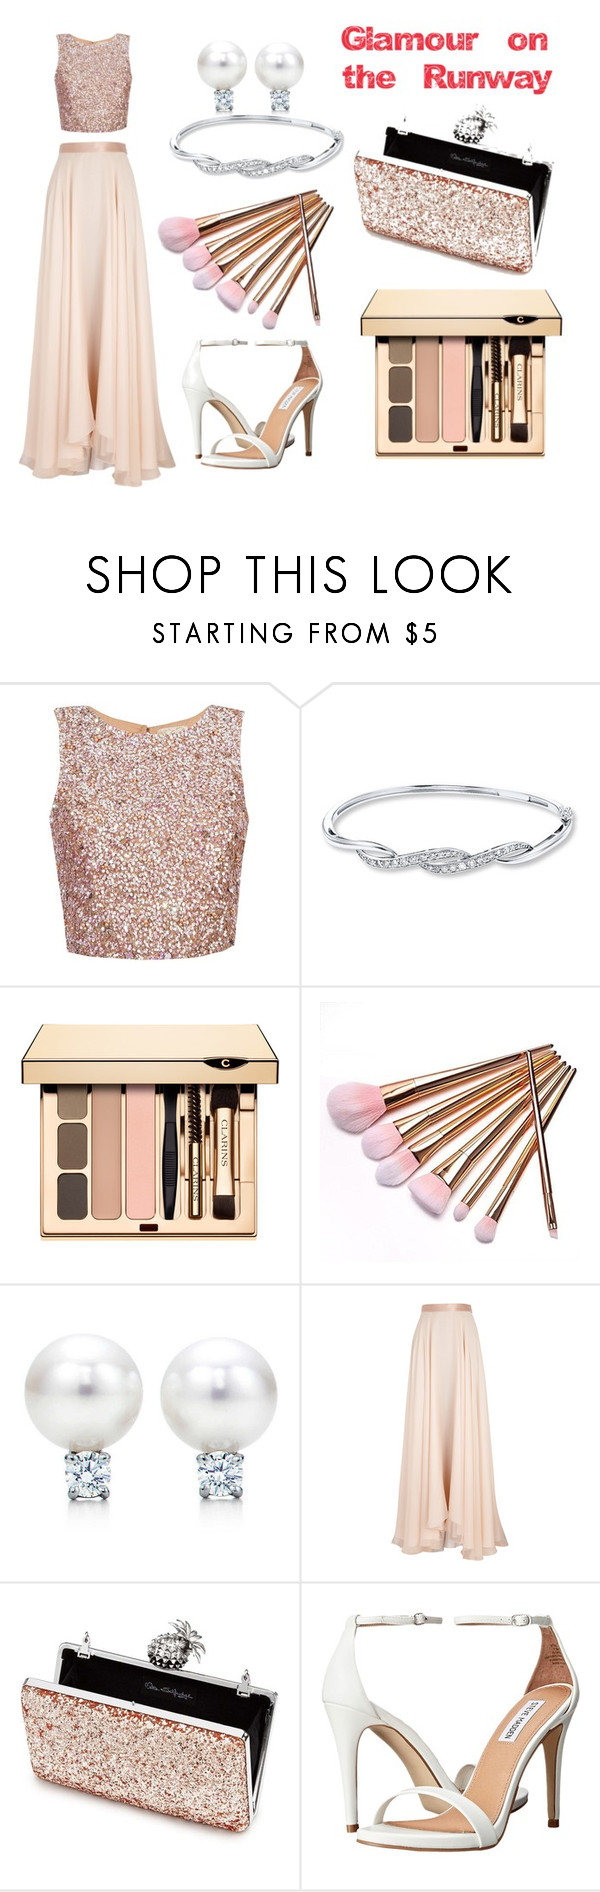 """Glamour on the Runway"" by lana-246 ❤ liked on Polyvore featuring Lanvin, Miss Selfridge and Steve Madden"